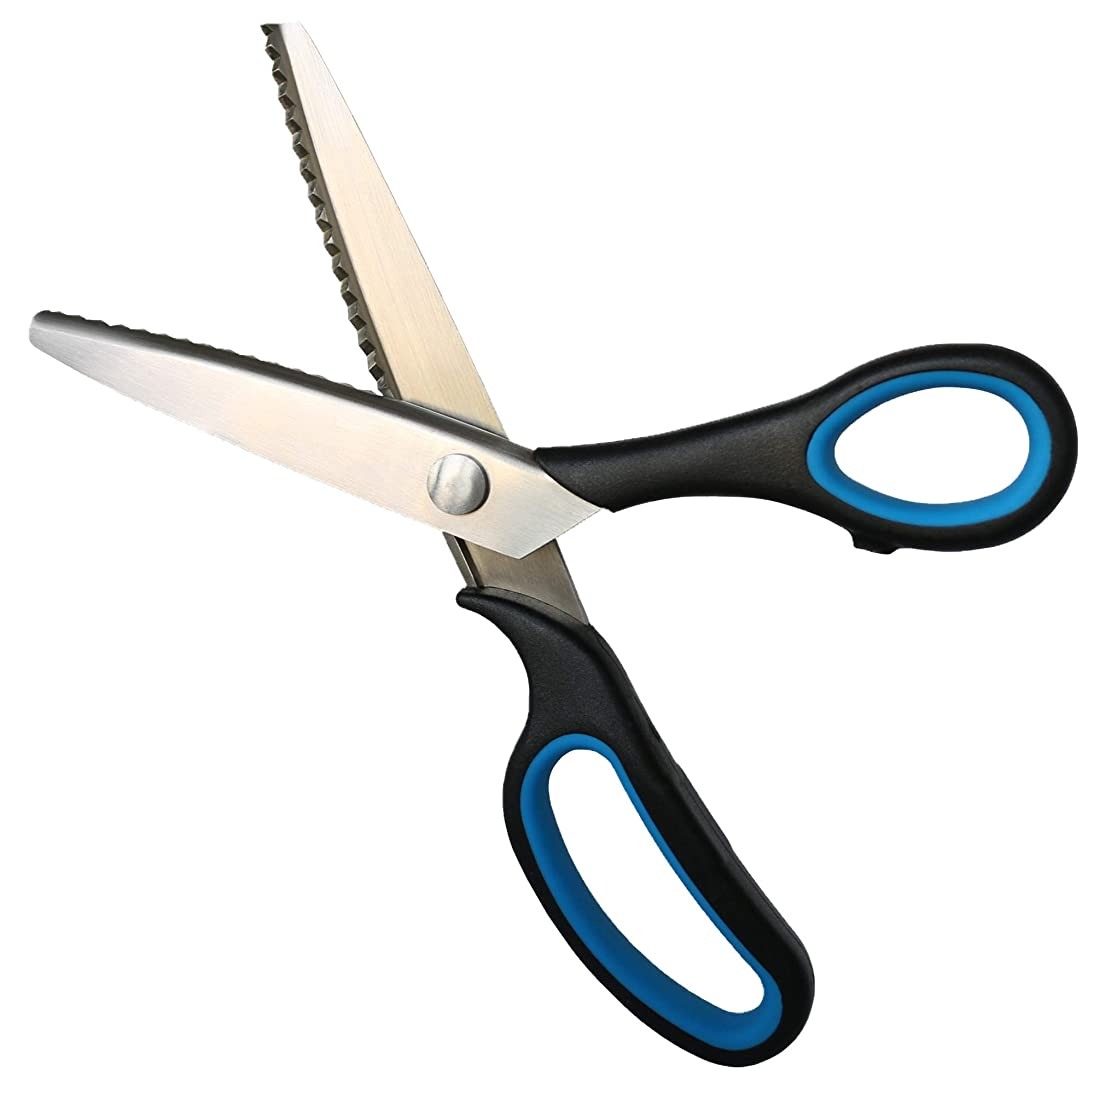 eGoodn Pinking Shears 9 Inch Craft Zig Zag Scissors Stainless Steel Serrated Blades Ergonomic Soft TPR Rubber Handle for Dressmaking Sewing Craft (Black & Blue)